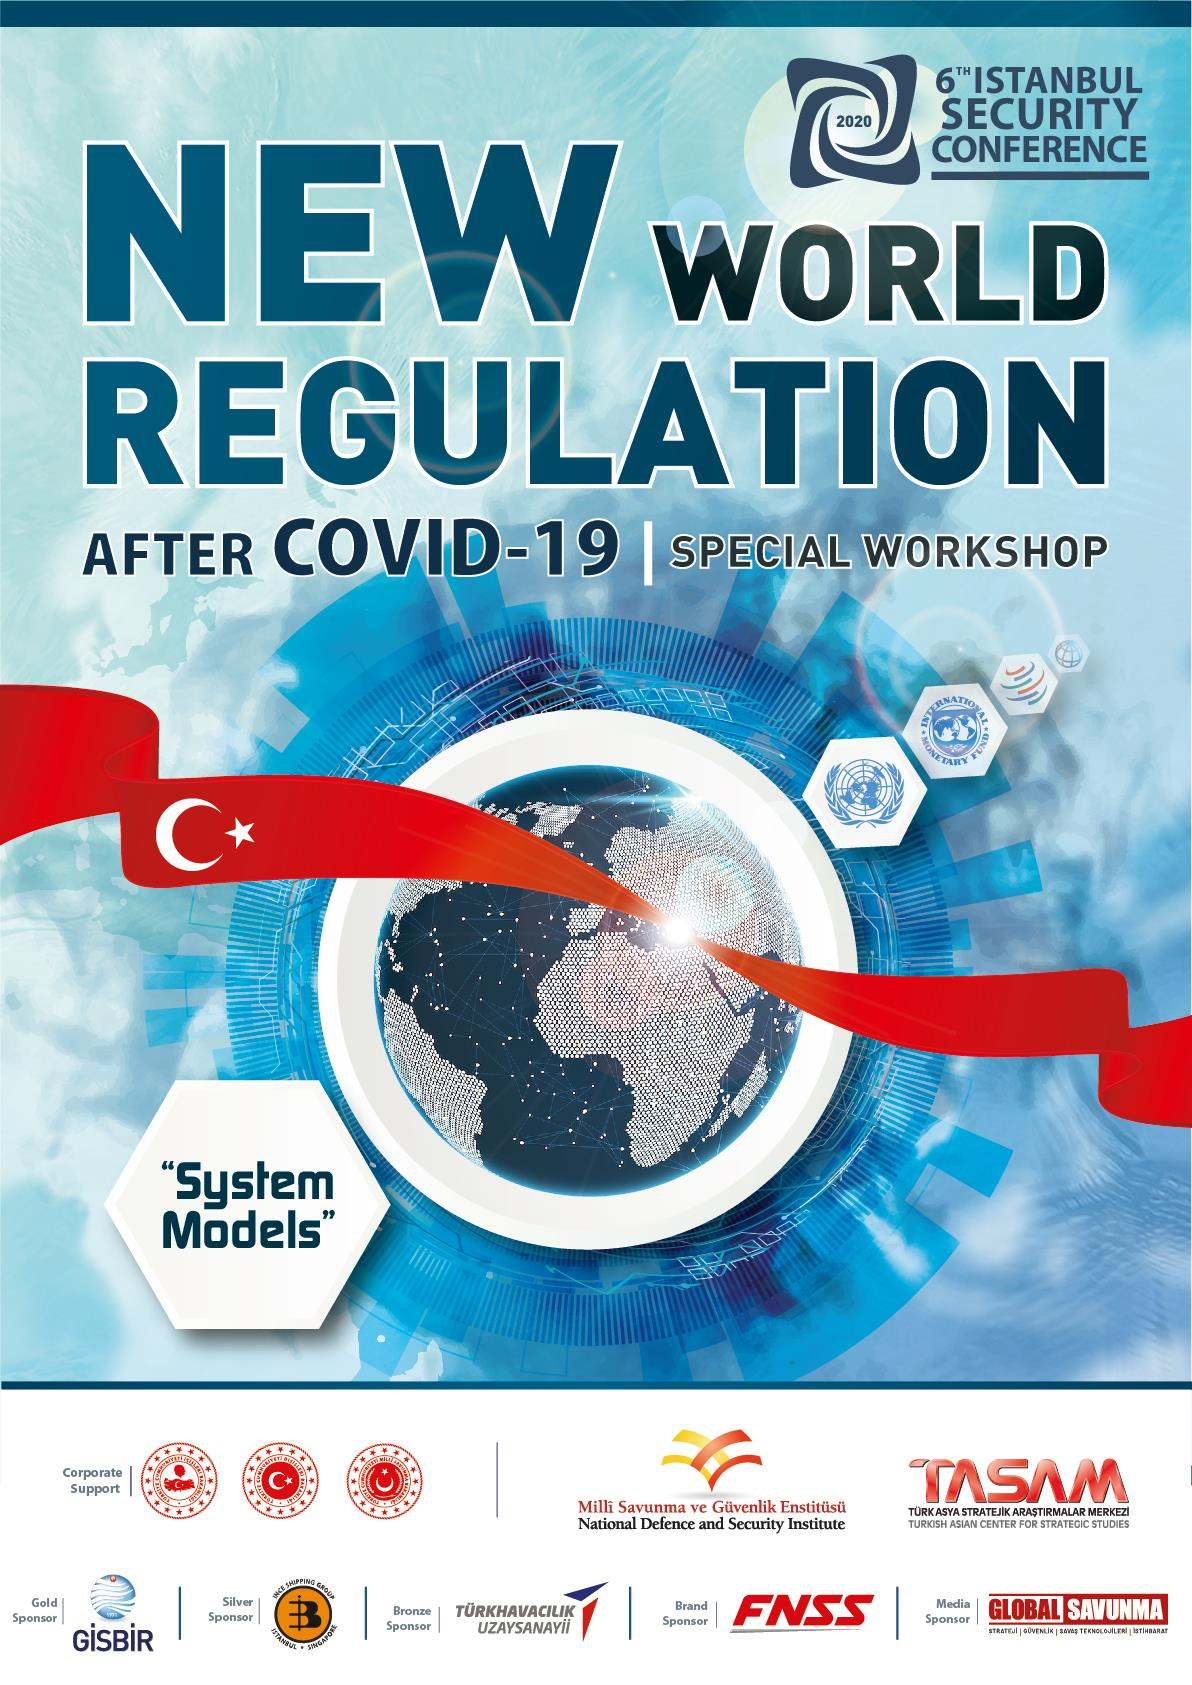 'New World Regulation After Covid-19' Workshop